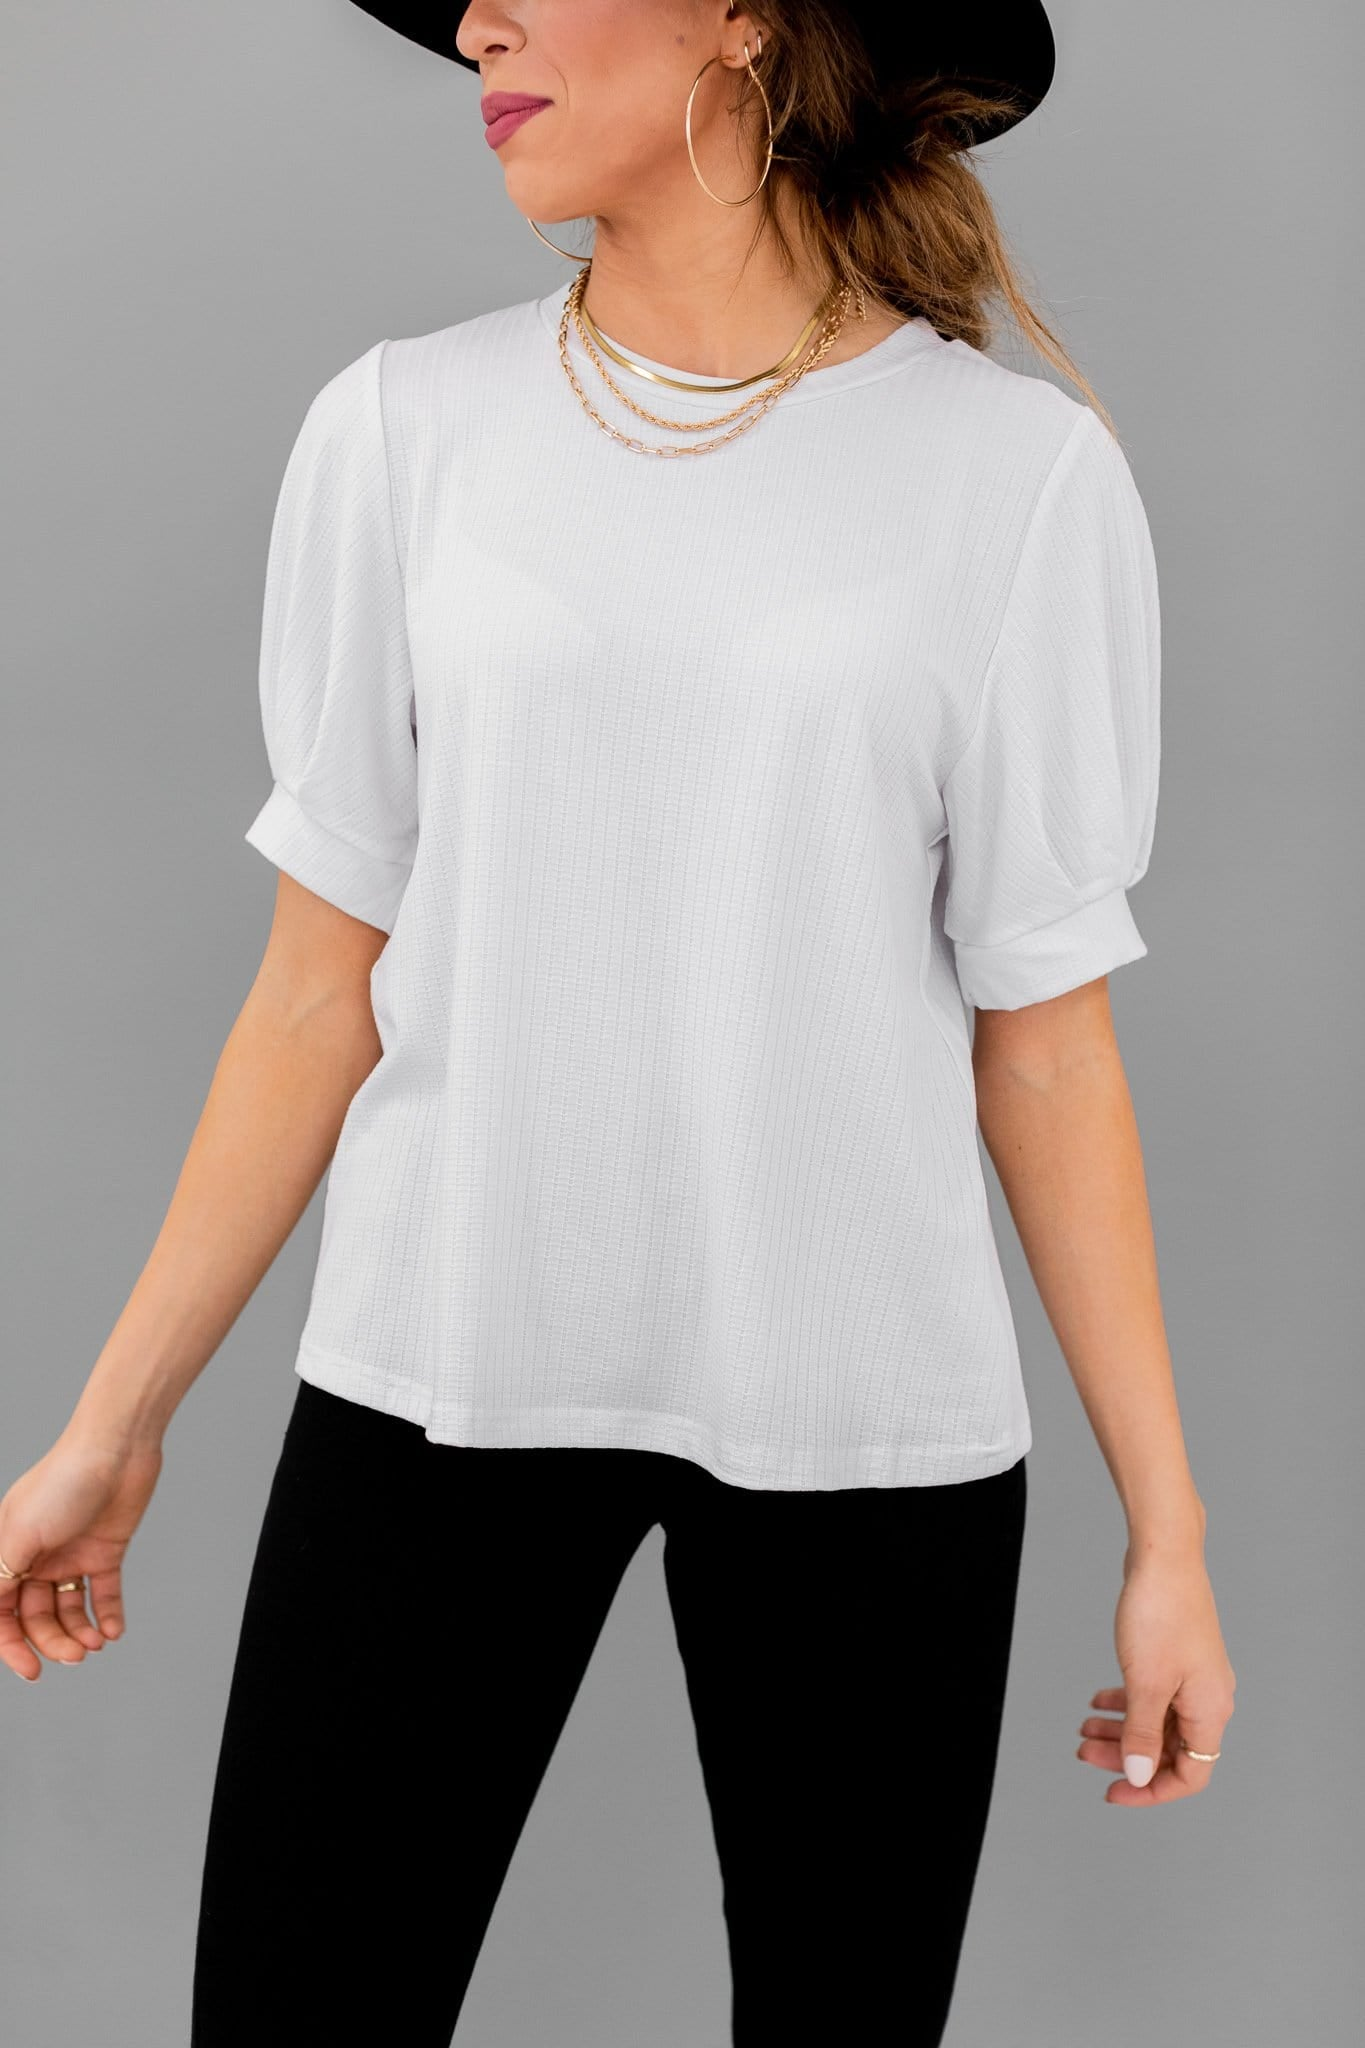 The Elin Knit Top in Off White